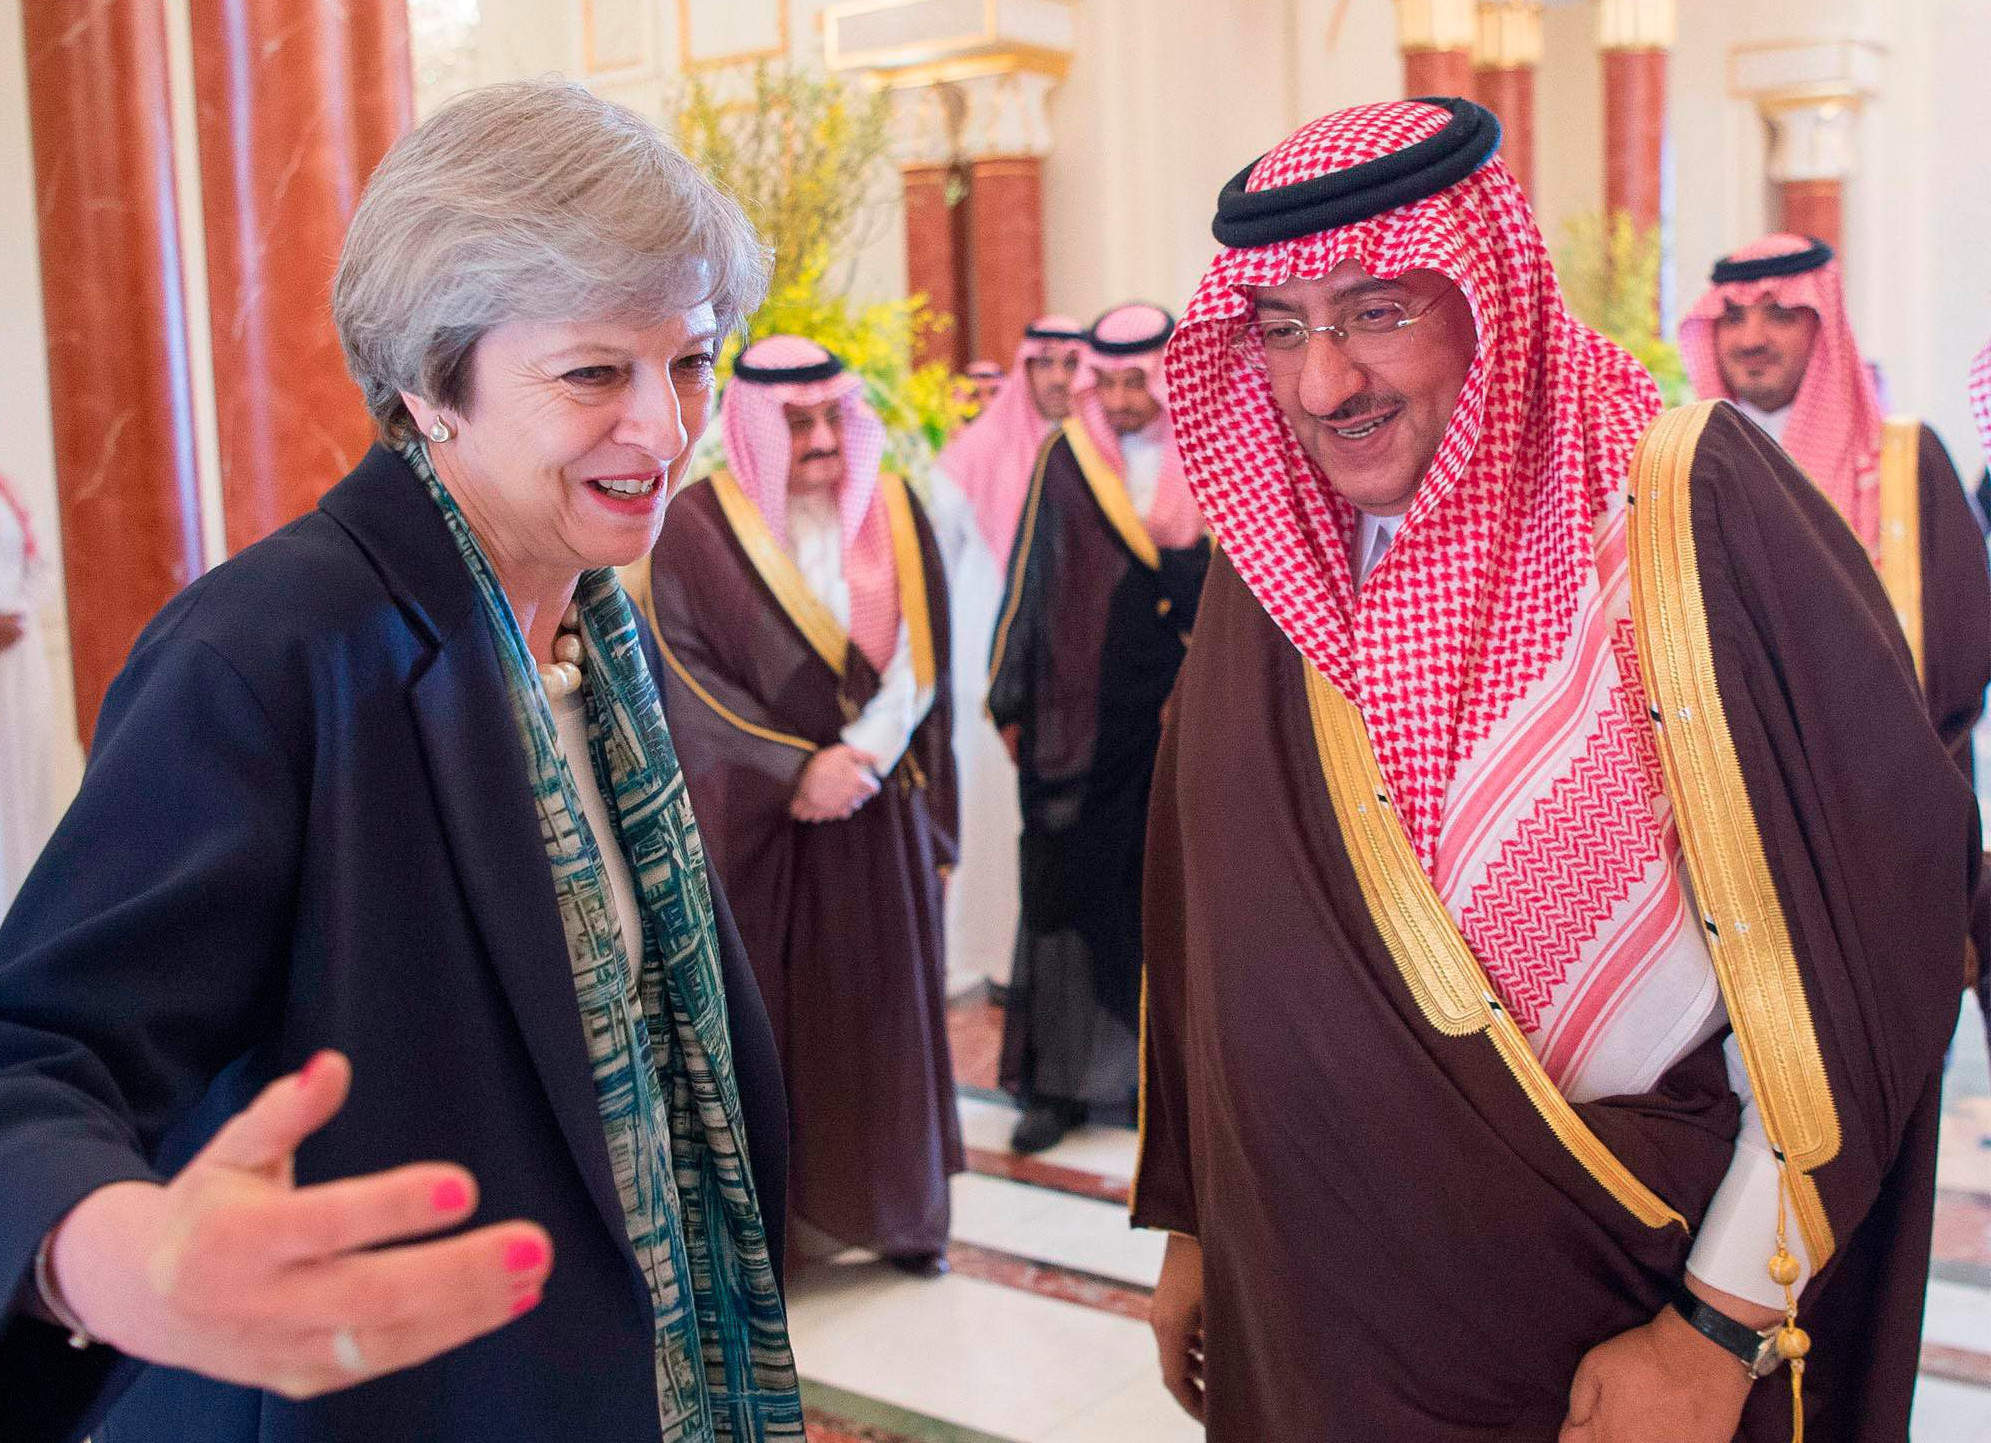 Saudi Crown Prince Mohammed bin Salman is going to visit the UK as May goes on Saudi Aramco charm offensive